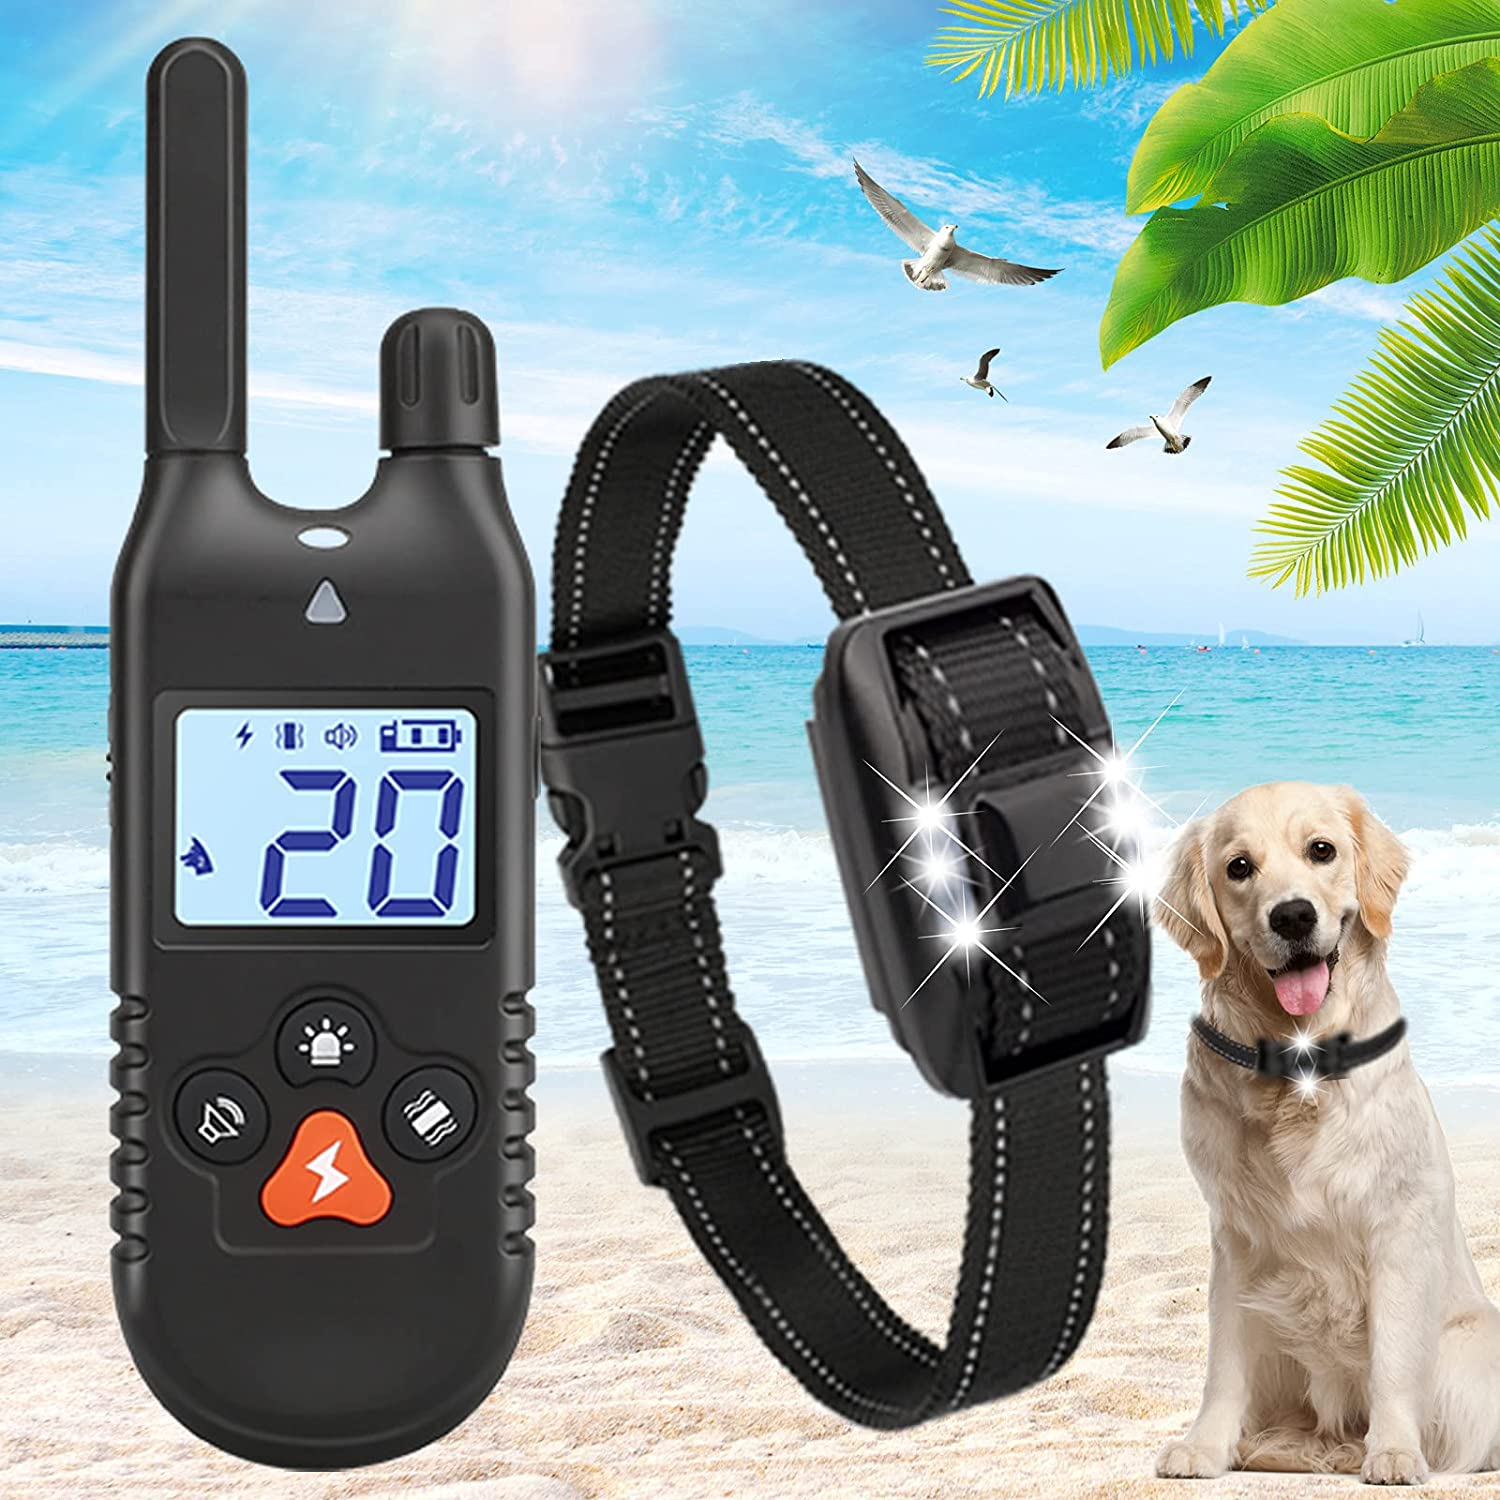 iTecFreely Dog Training Collar Remote Rapid rise Shock Electronic with Overseas parallel import regular item